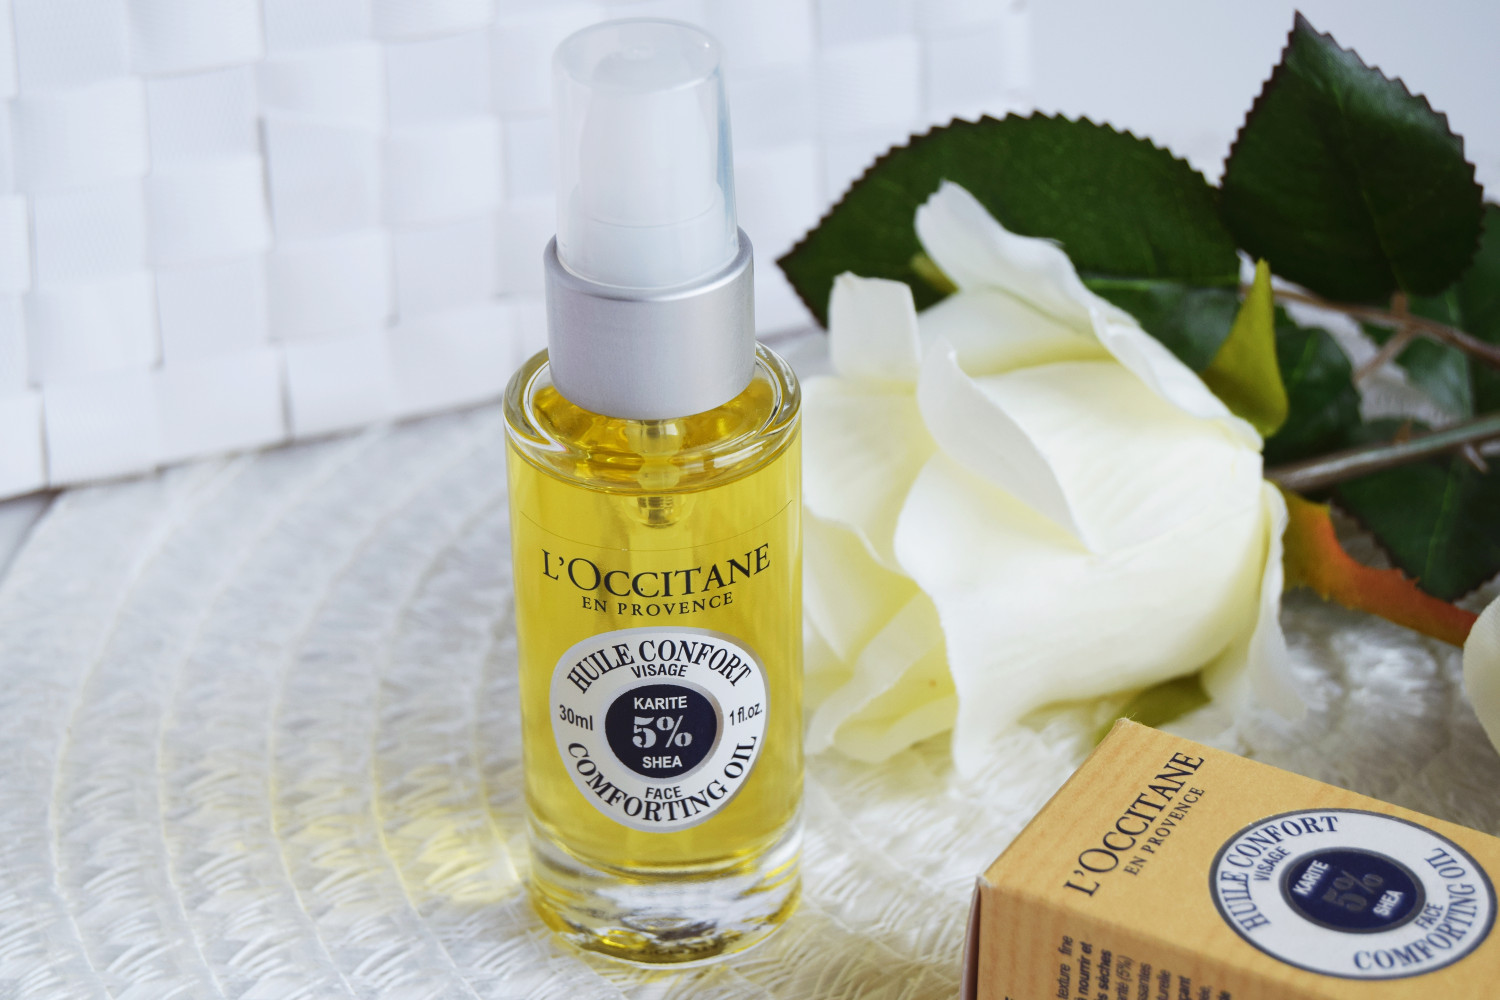 L'Occitane_face_oil_karite_shea_review_Zalabell_beauty_3